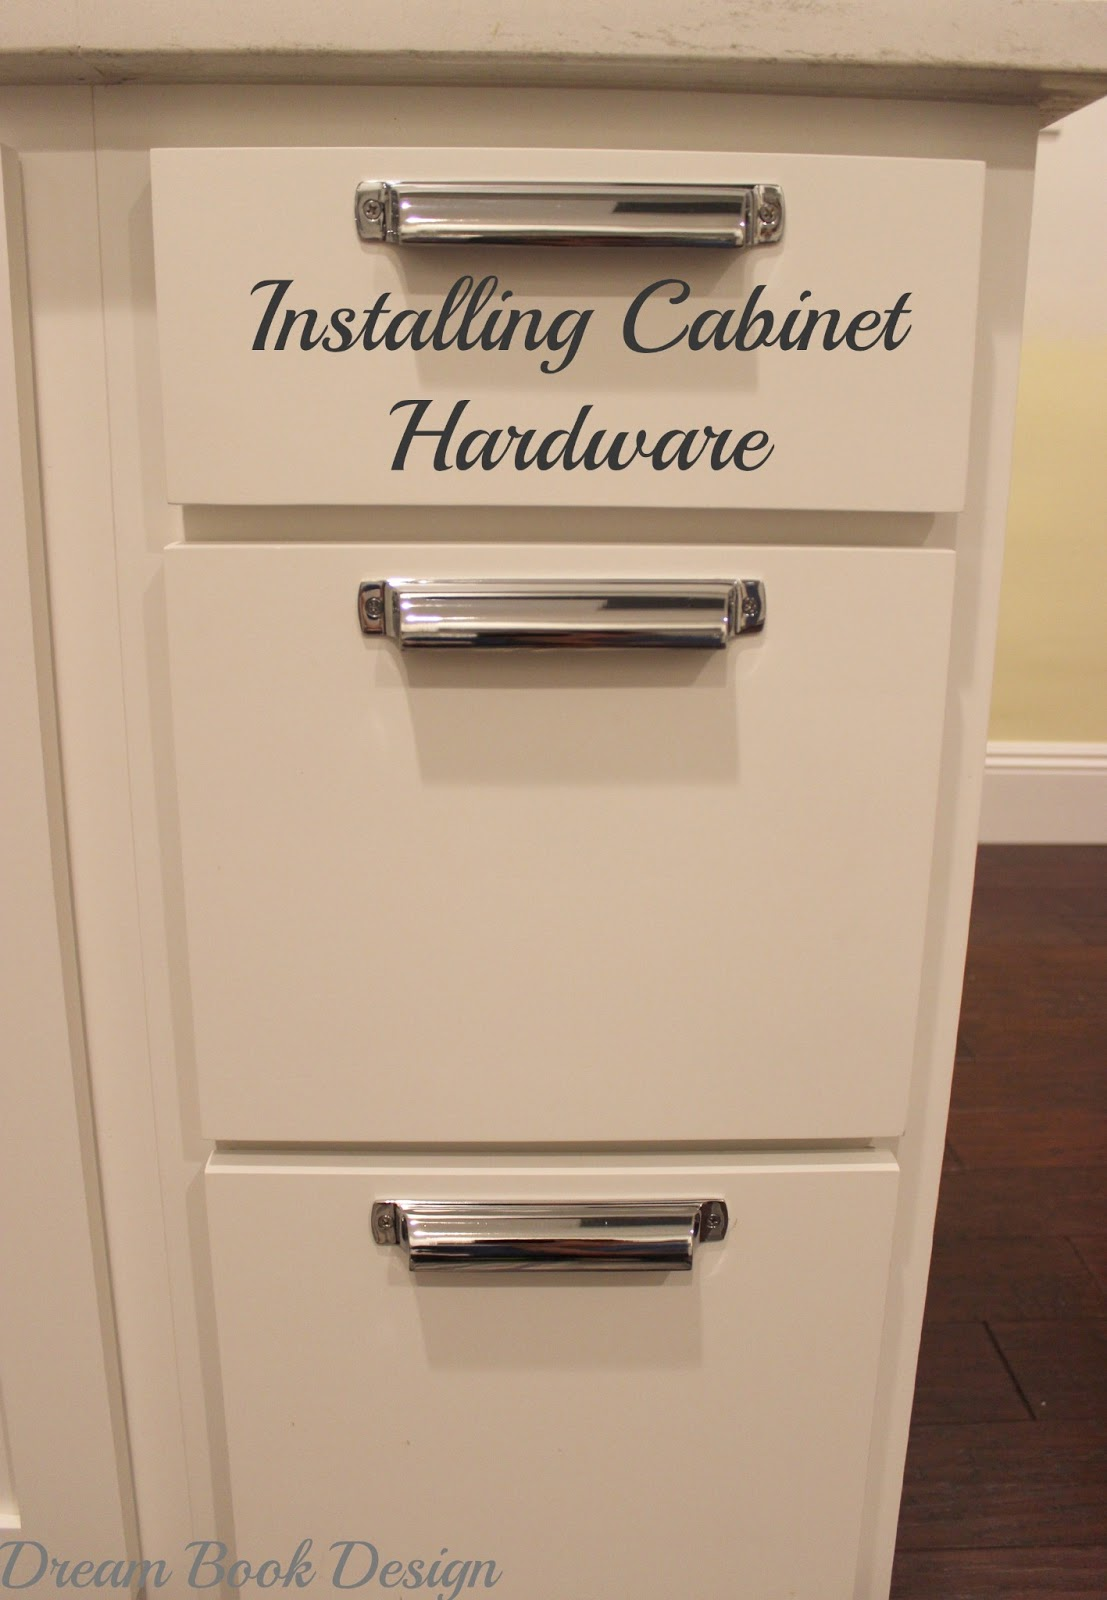 how to replace kitchen cabinets cost of renovating a install cabinet hardware tutorial dream